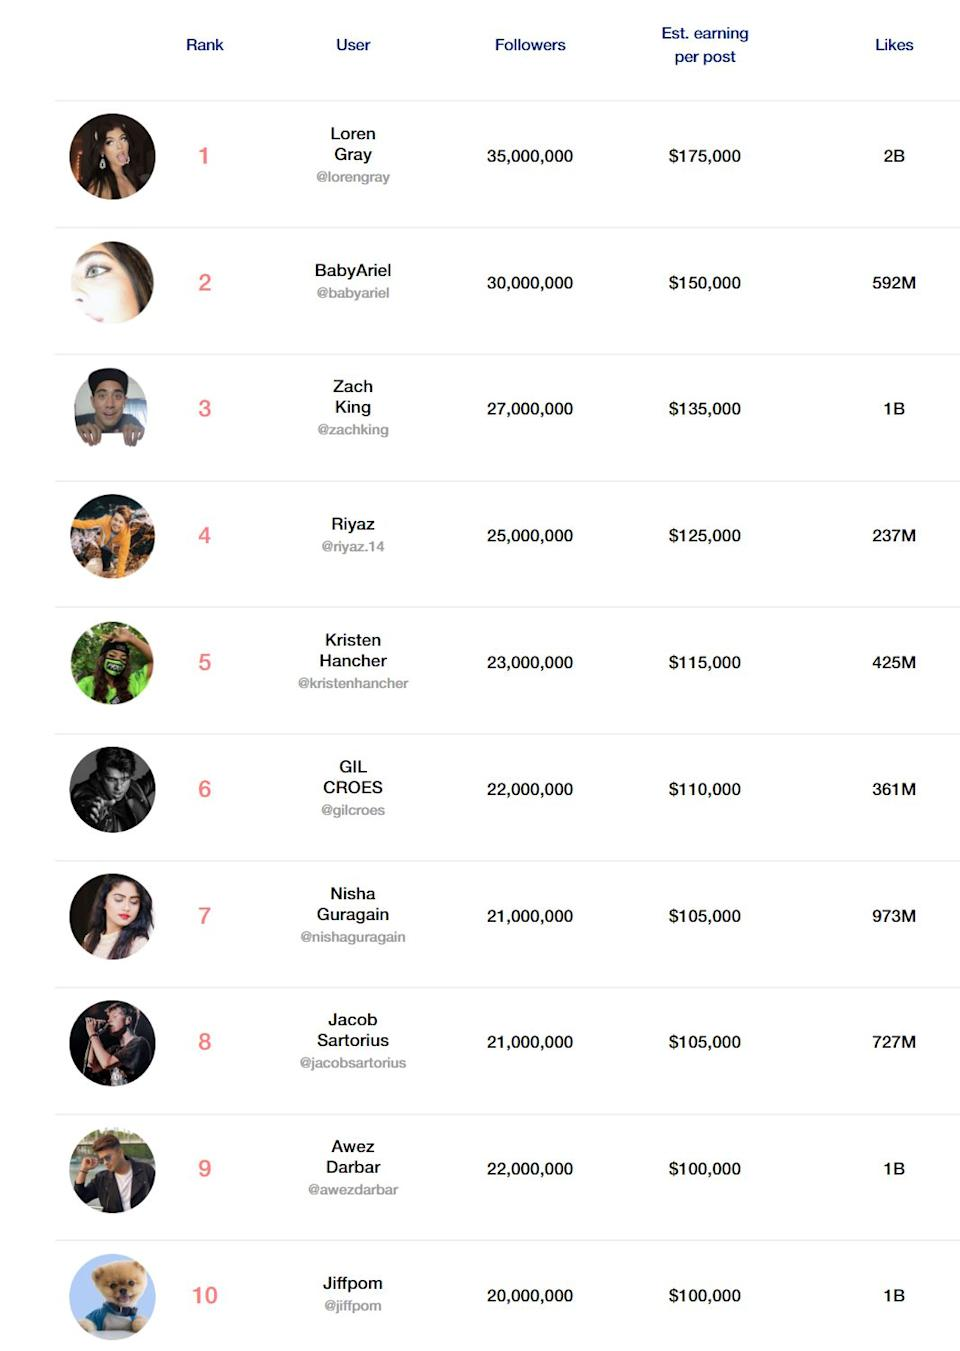 The top ten TikTok influencers 2019